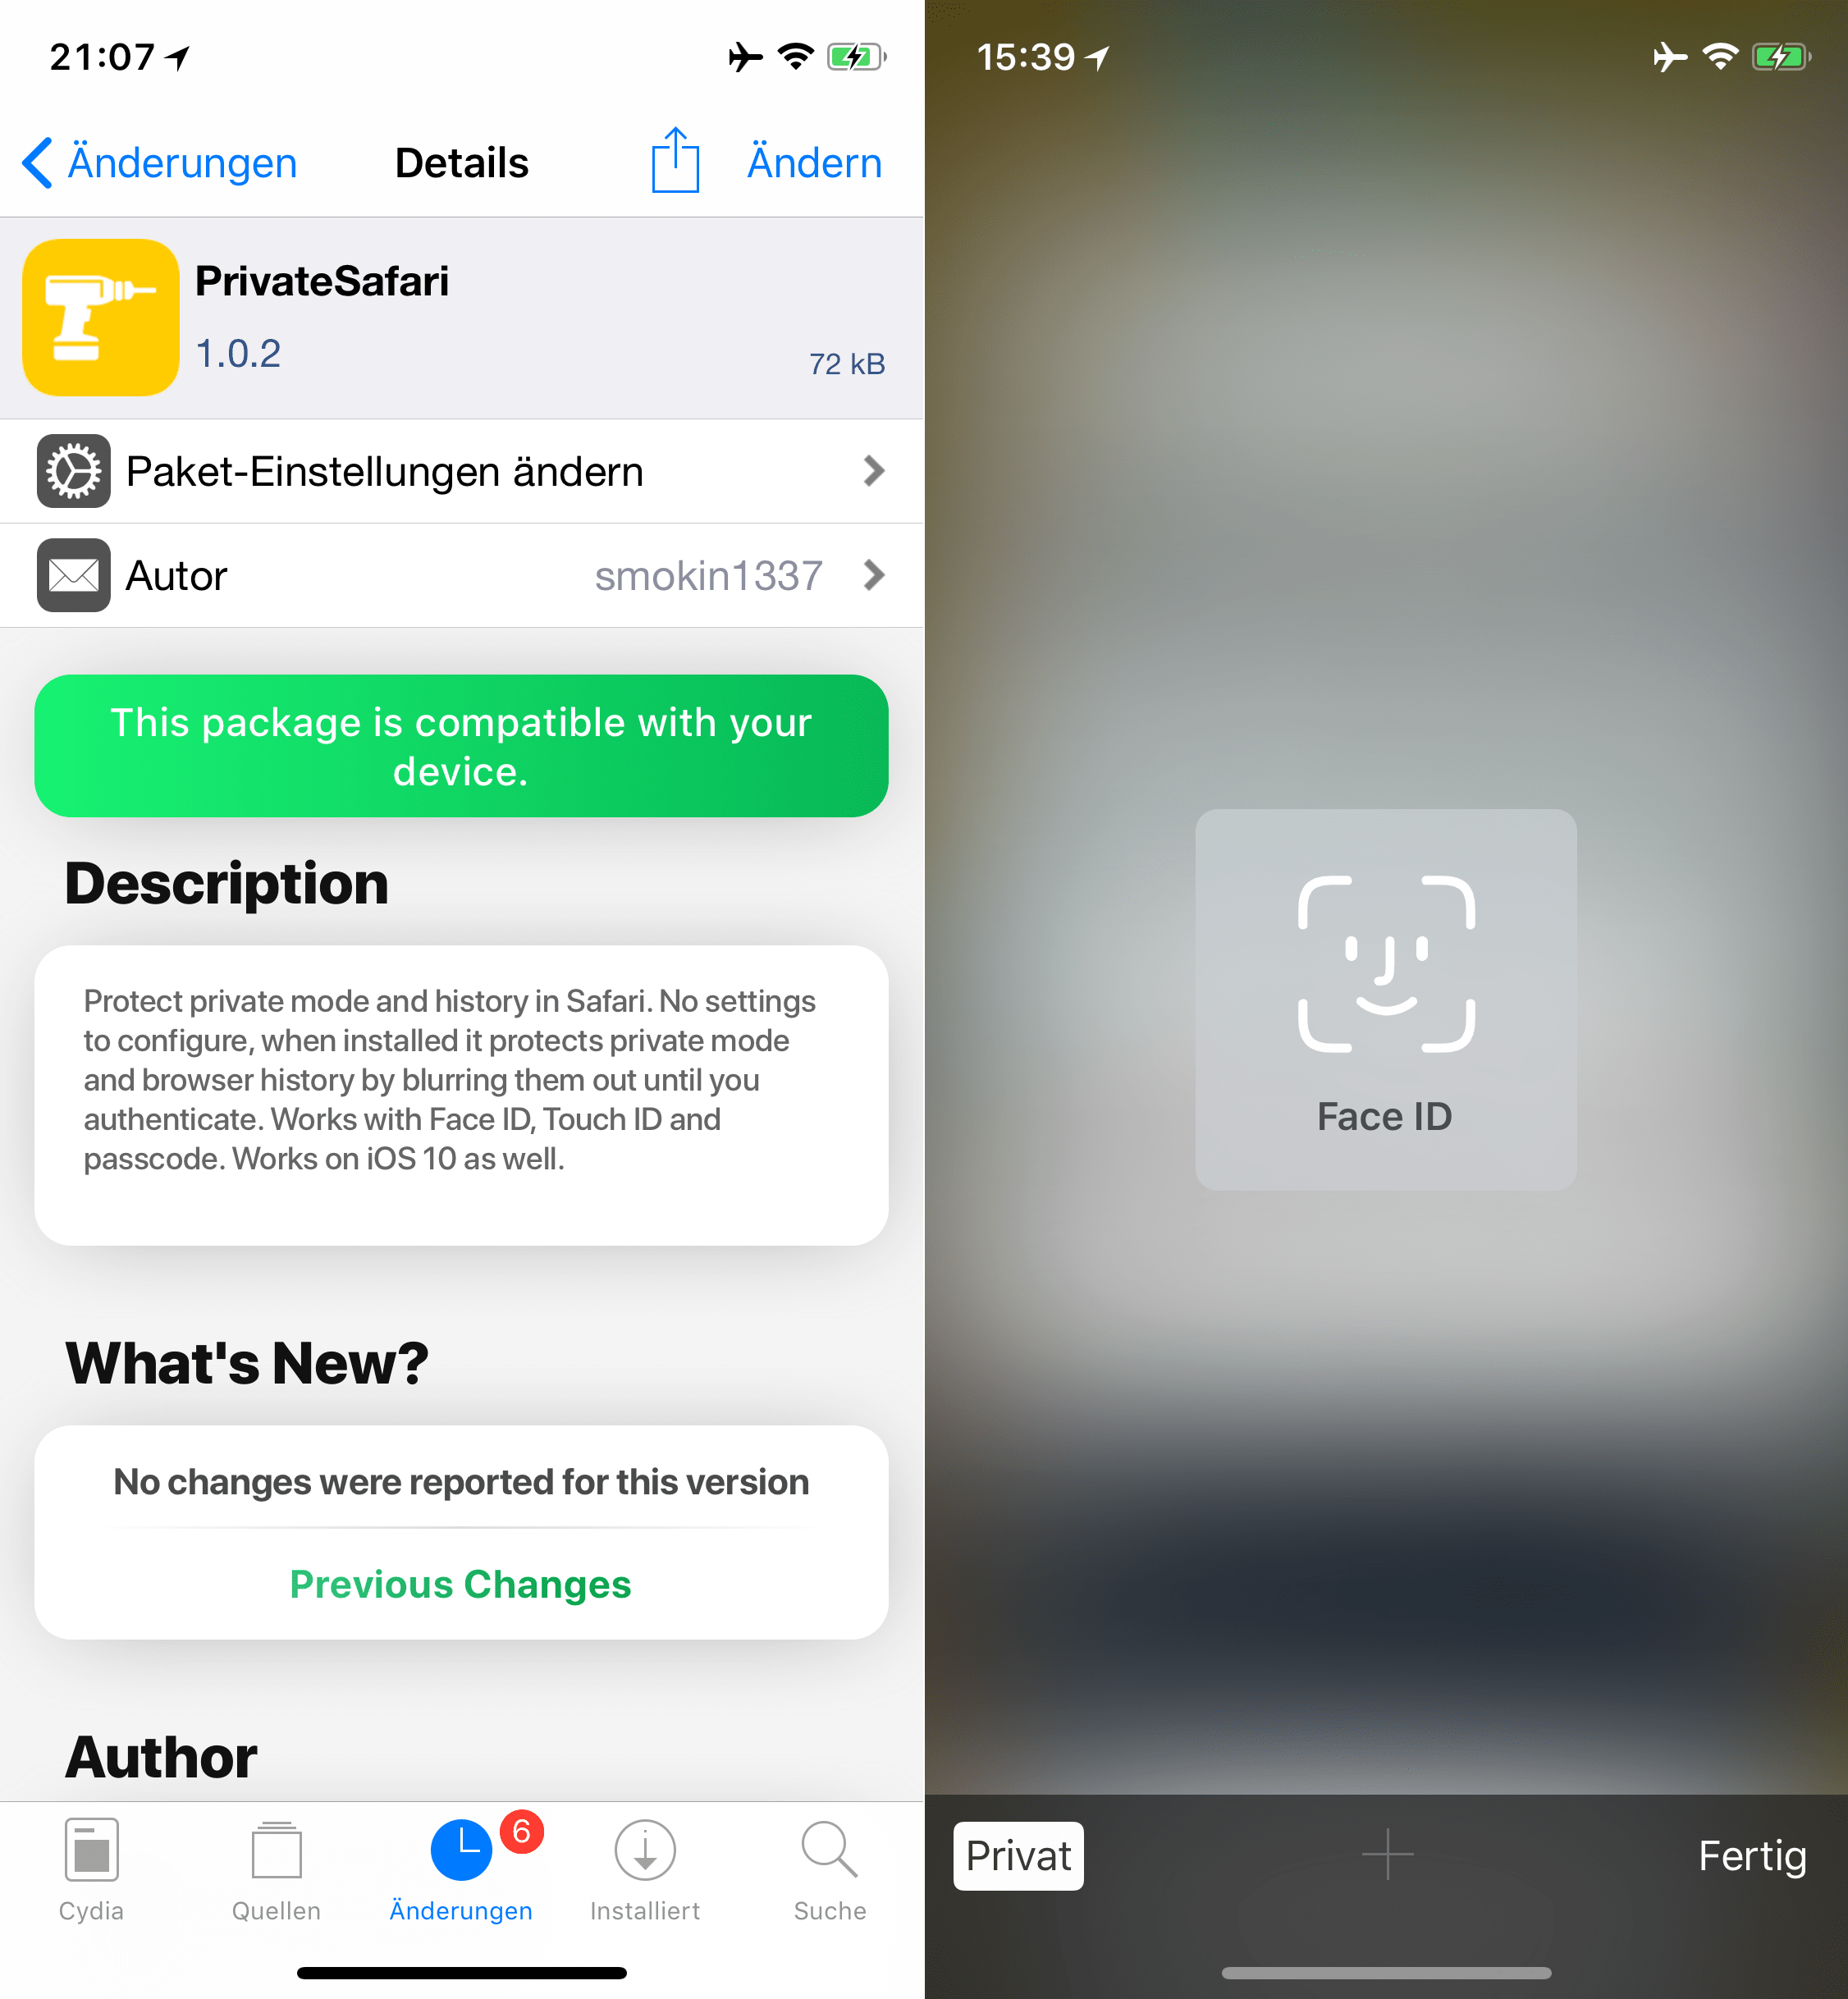 Den Privaten Modus in Safari mit FaceID/Passwort sichern, PrivateSafari, Top, Cydia, Tweak, Sileo, Download, kostenlos, gratis, .deb, Hack4Life, Fabian Geissler, Review